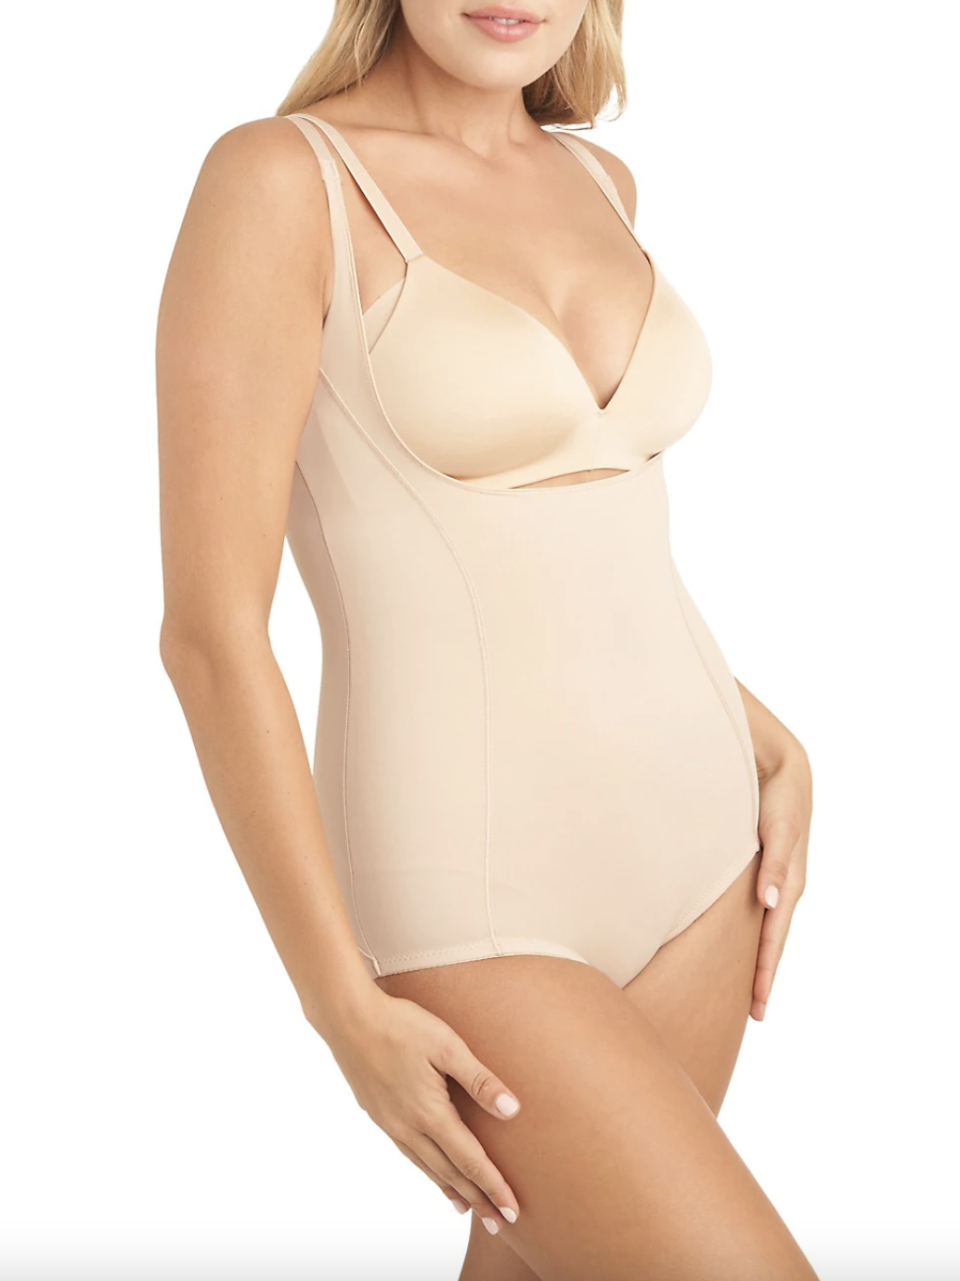 nude miraclesuit bodysuit for underneath wedding dresses on a blonde model